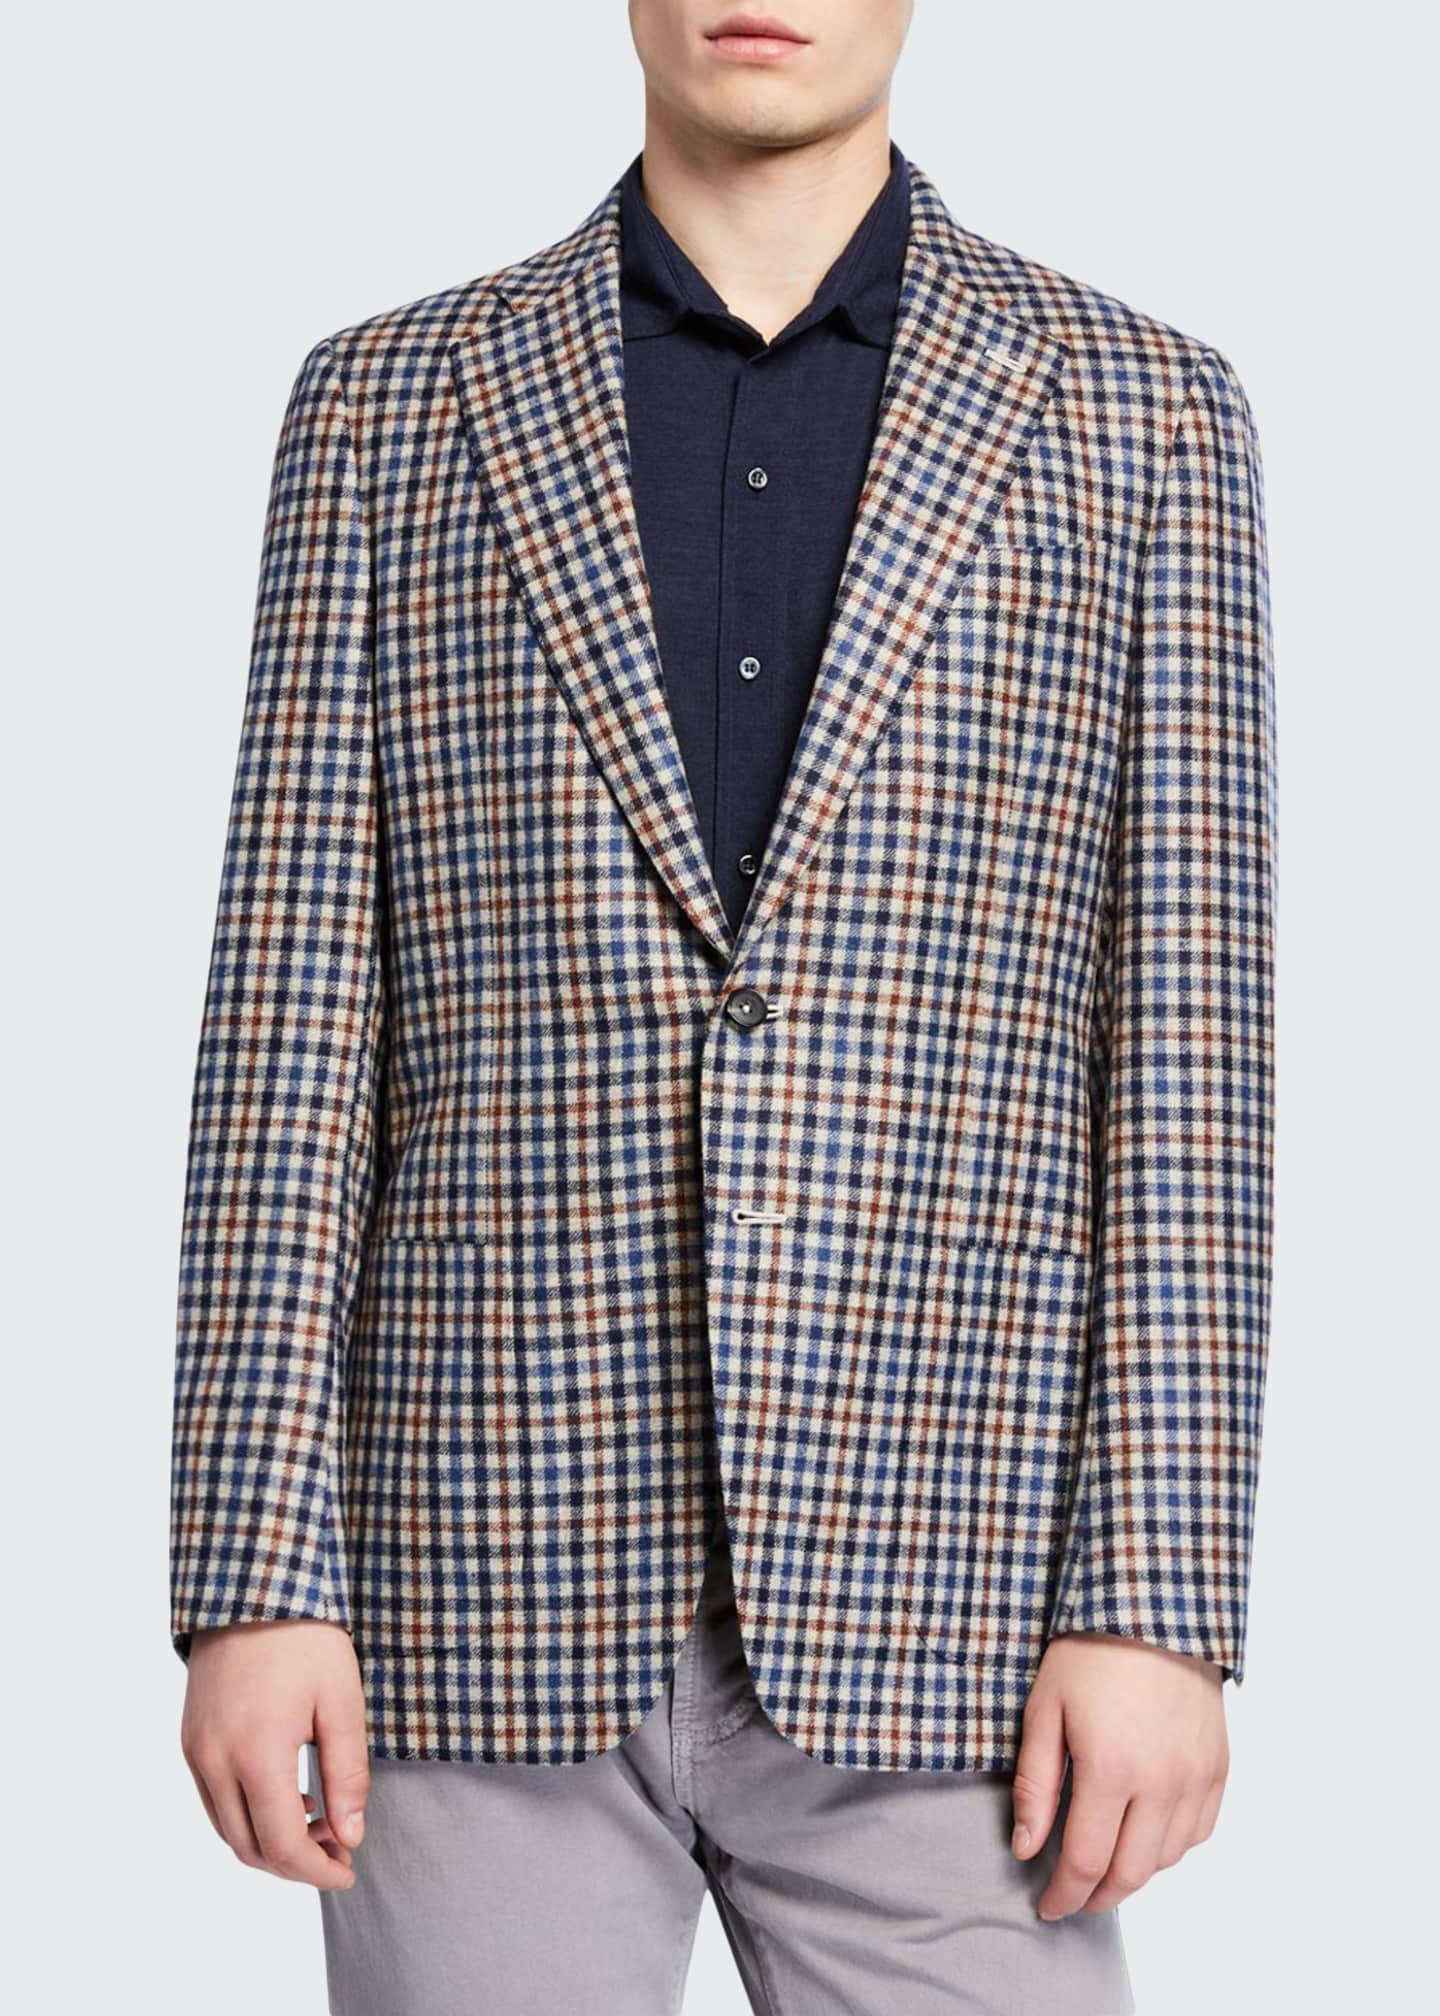 Isaia Men's Check Two-Button Jacket